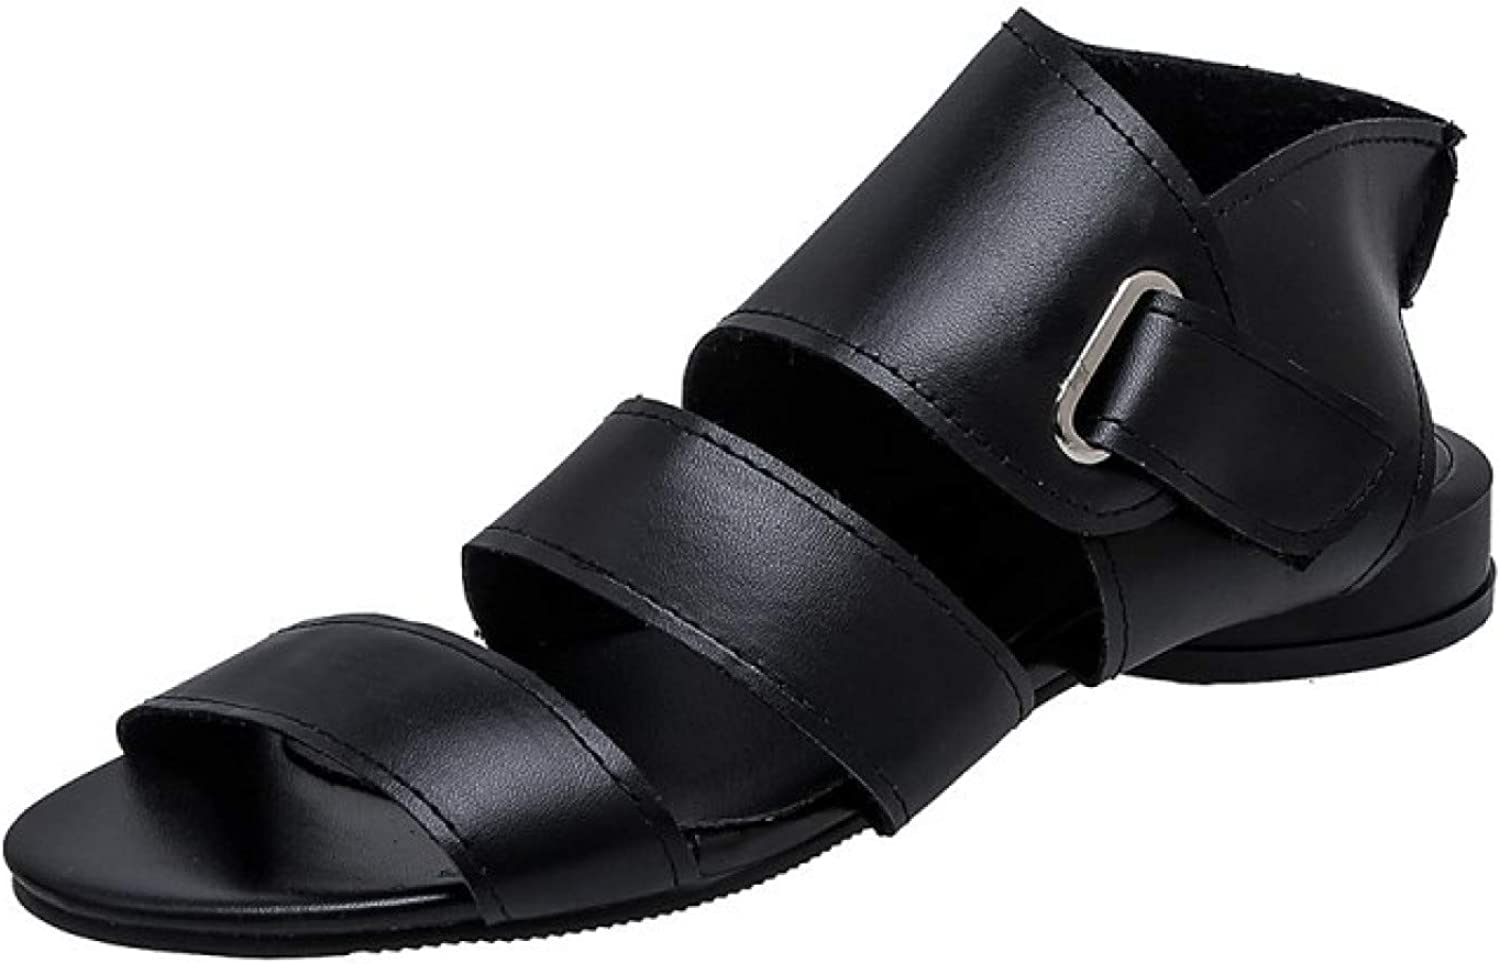 Women's Sandals Comfort Adjustable Beauty products Hook OFFicial mail order Loop Buckle and Ankle St